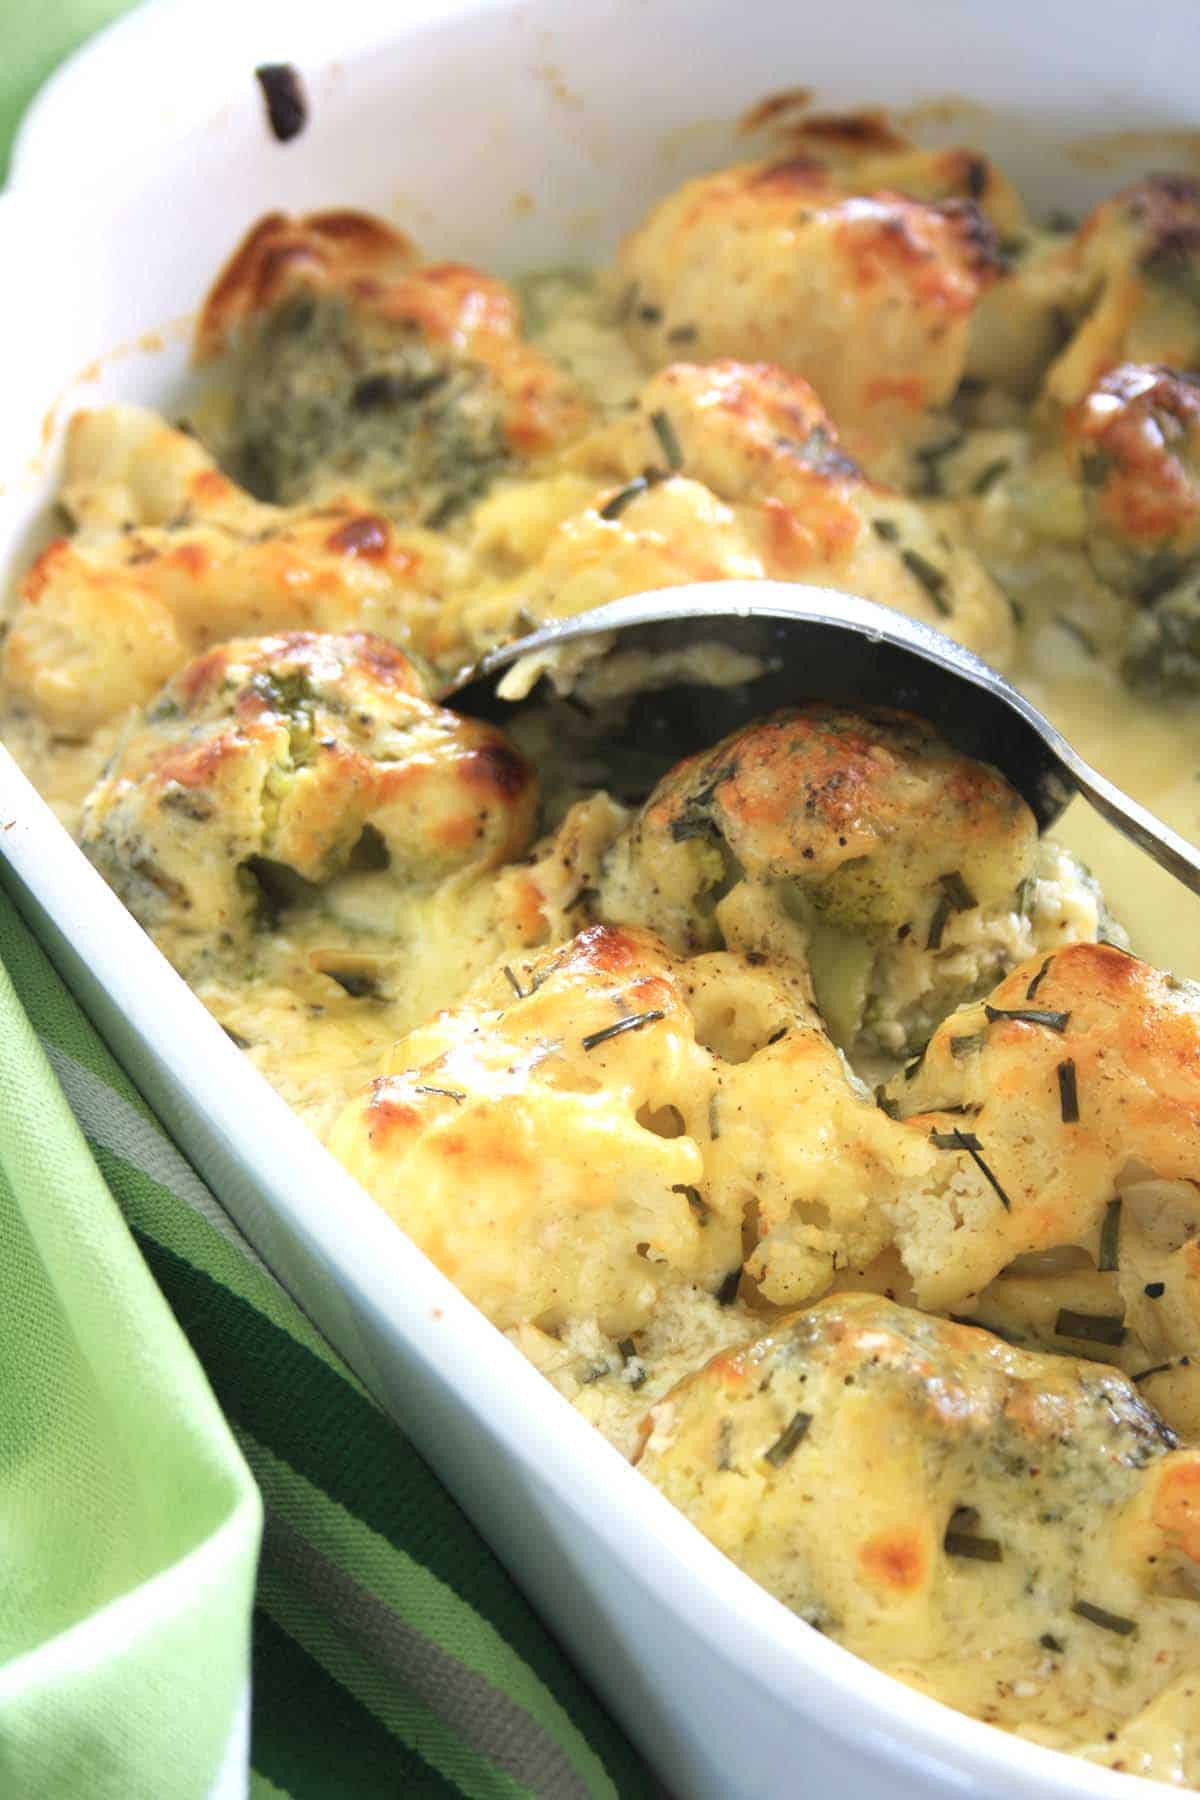 broccoli cauliflower cheese bake in a dish with a metal spoon for serving.